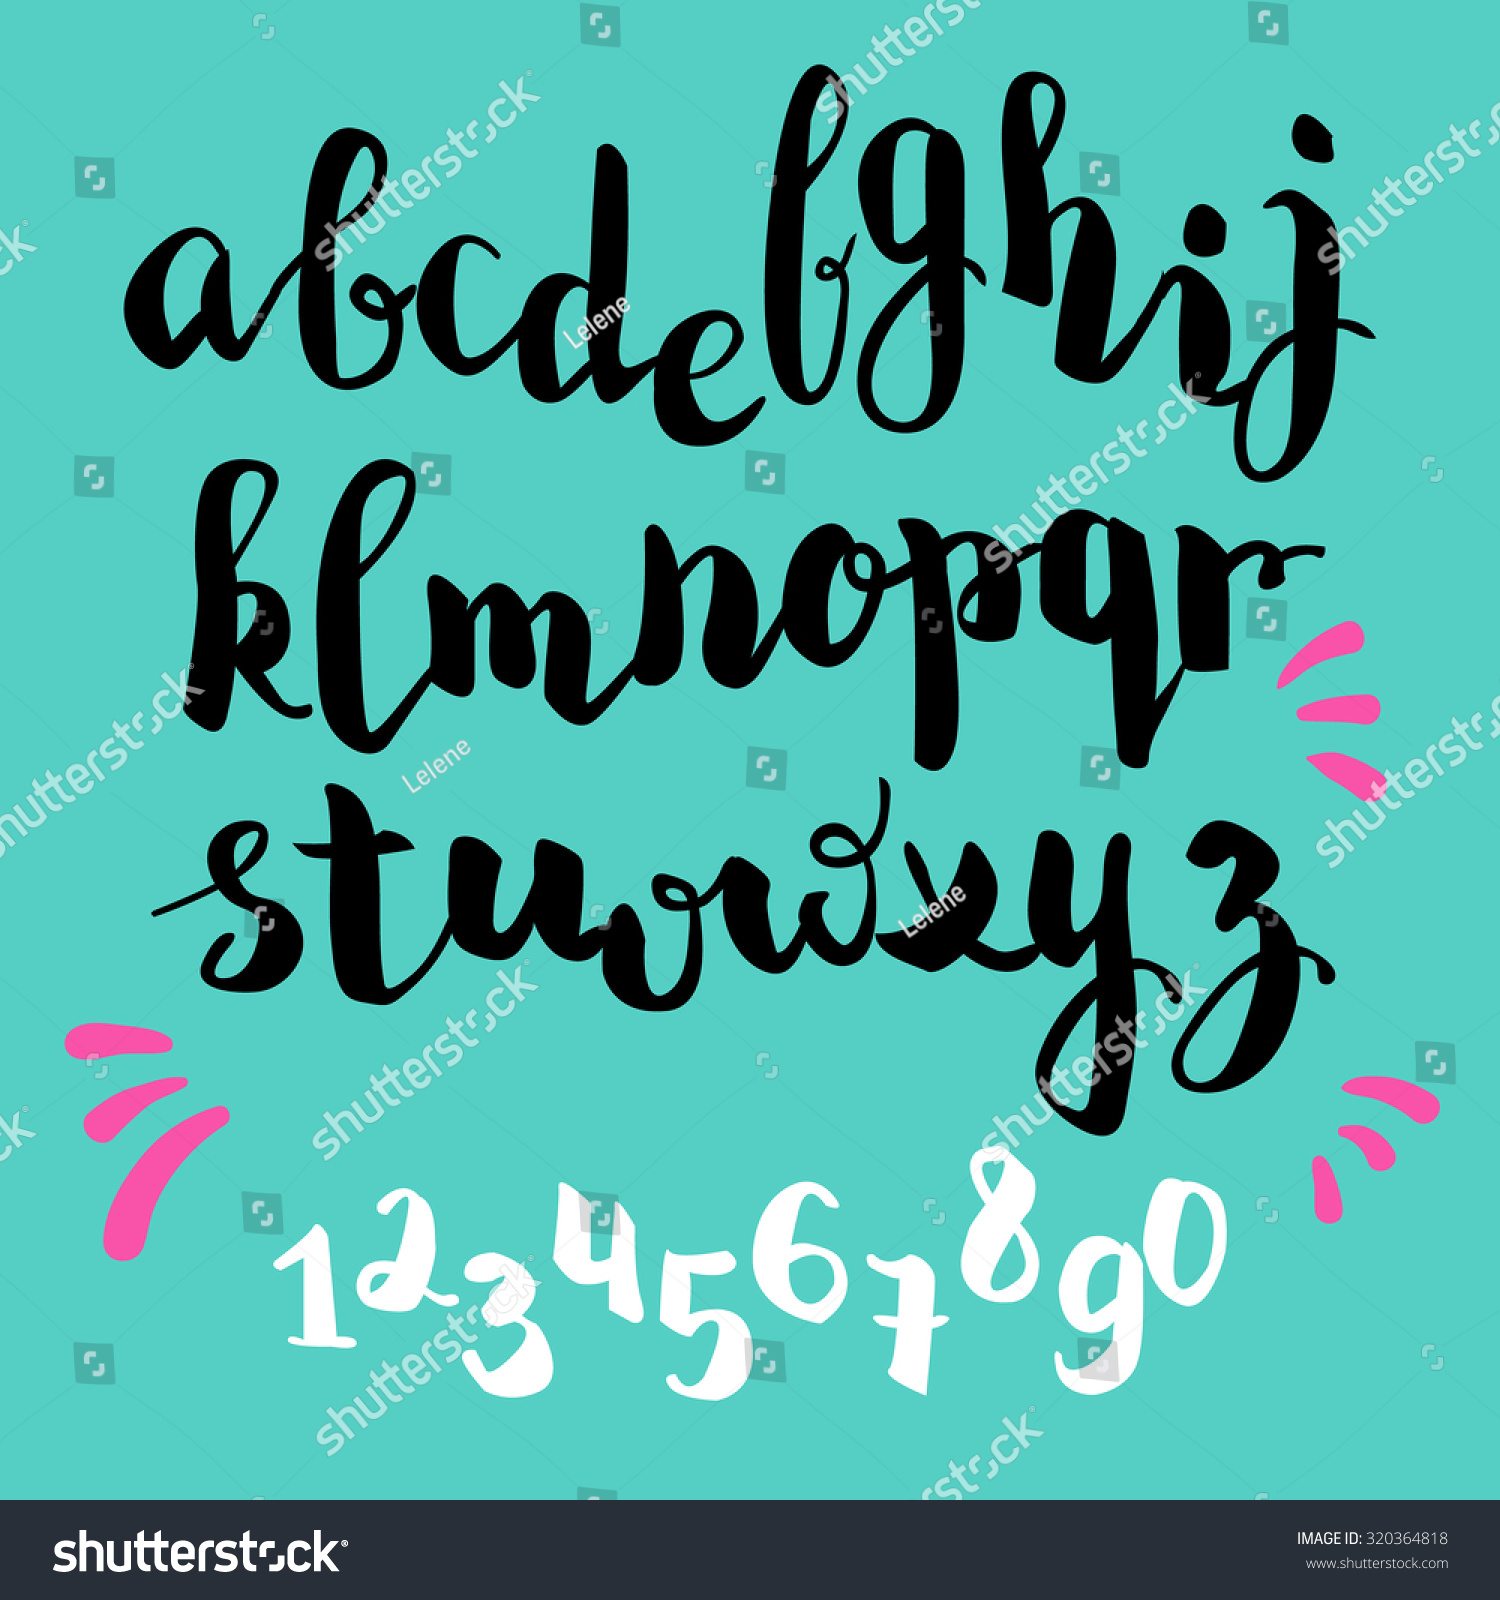 ... pen style vector alphabet calligraphy lowercase letters and figures